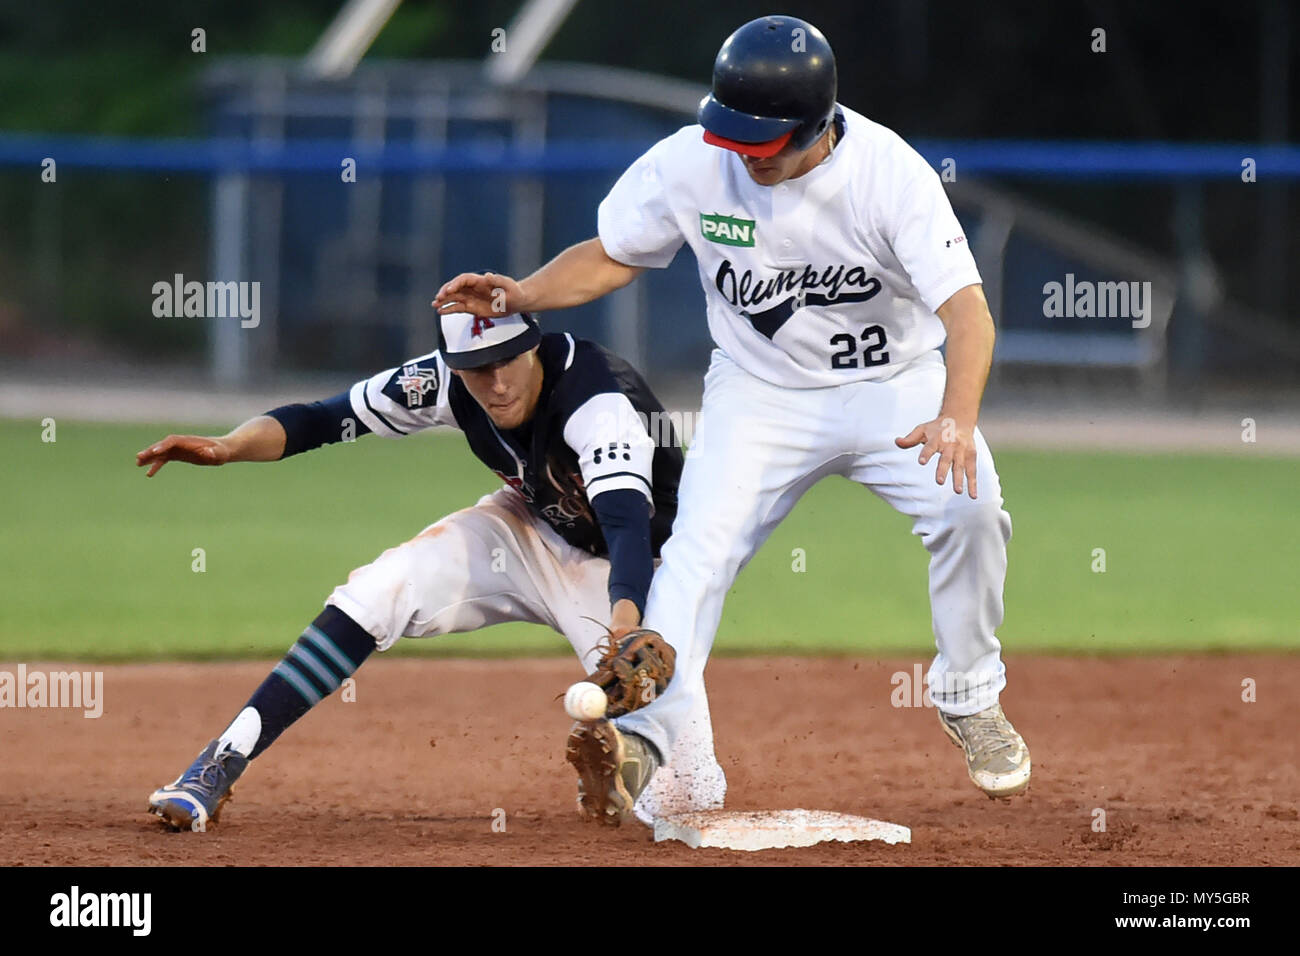 5475ccbb5eee9 L-R JAKUB GREPL (Arrows) and IVAN MITROVIC (Olimpija) in action during the  baseball match Ostrava Arrows (CZE) vs Olimpija 83 Karlovac (CRO) within  the 2018 ...